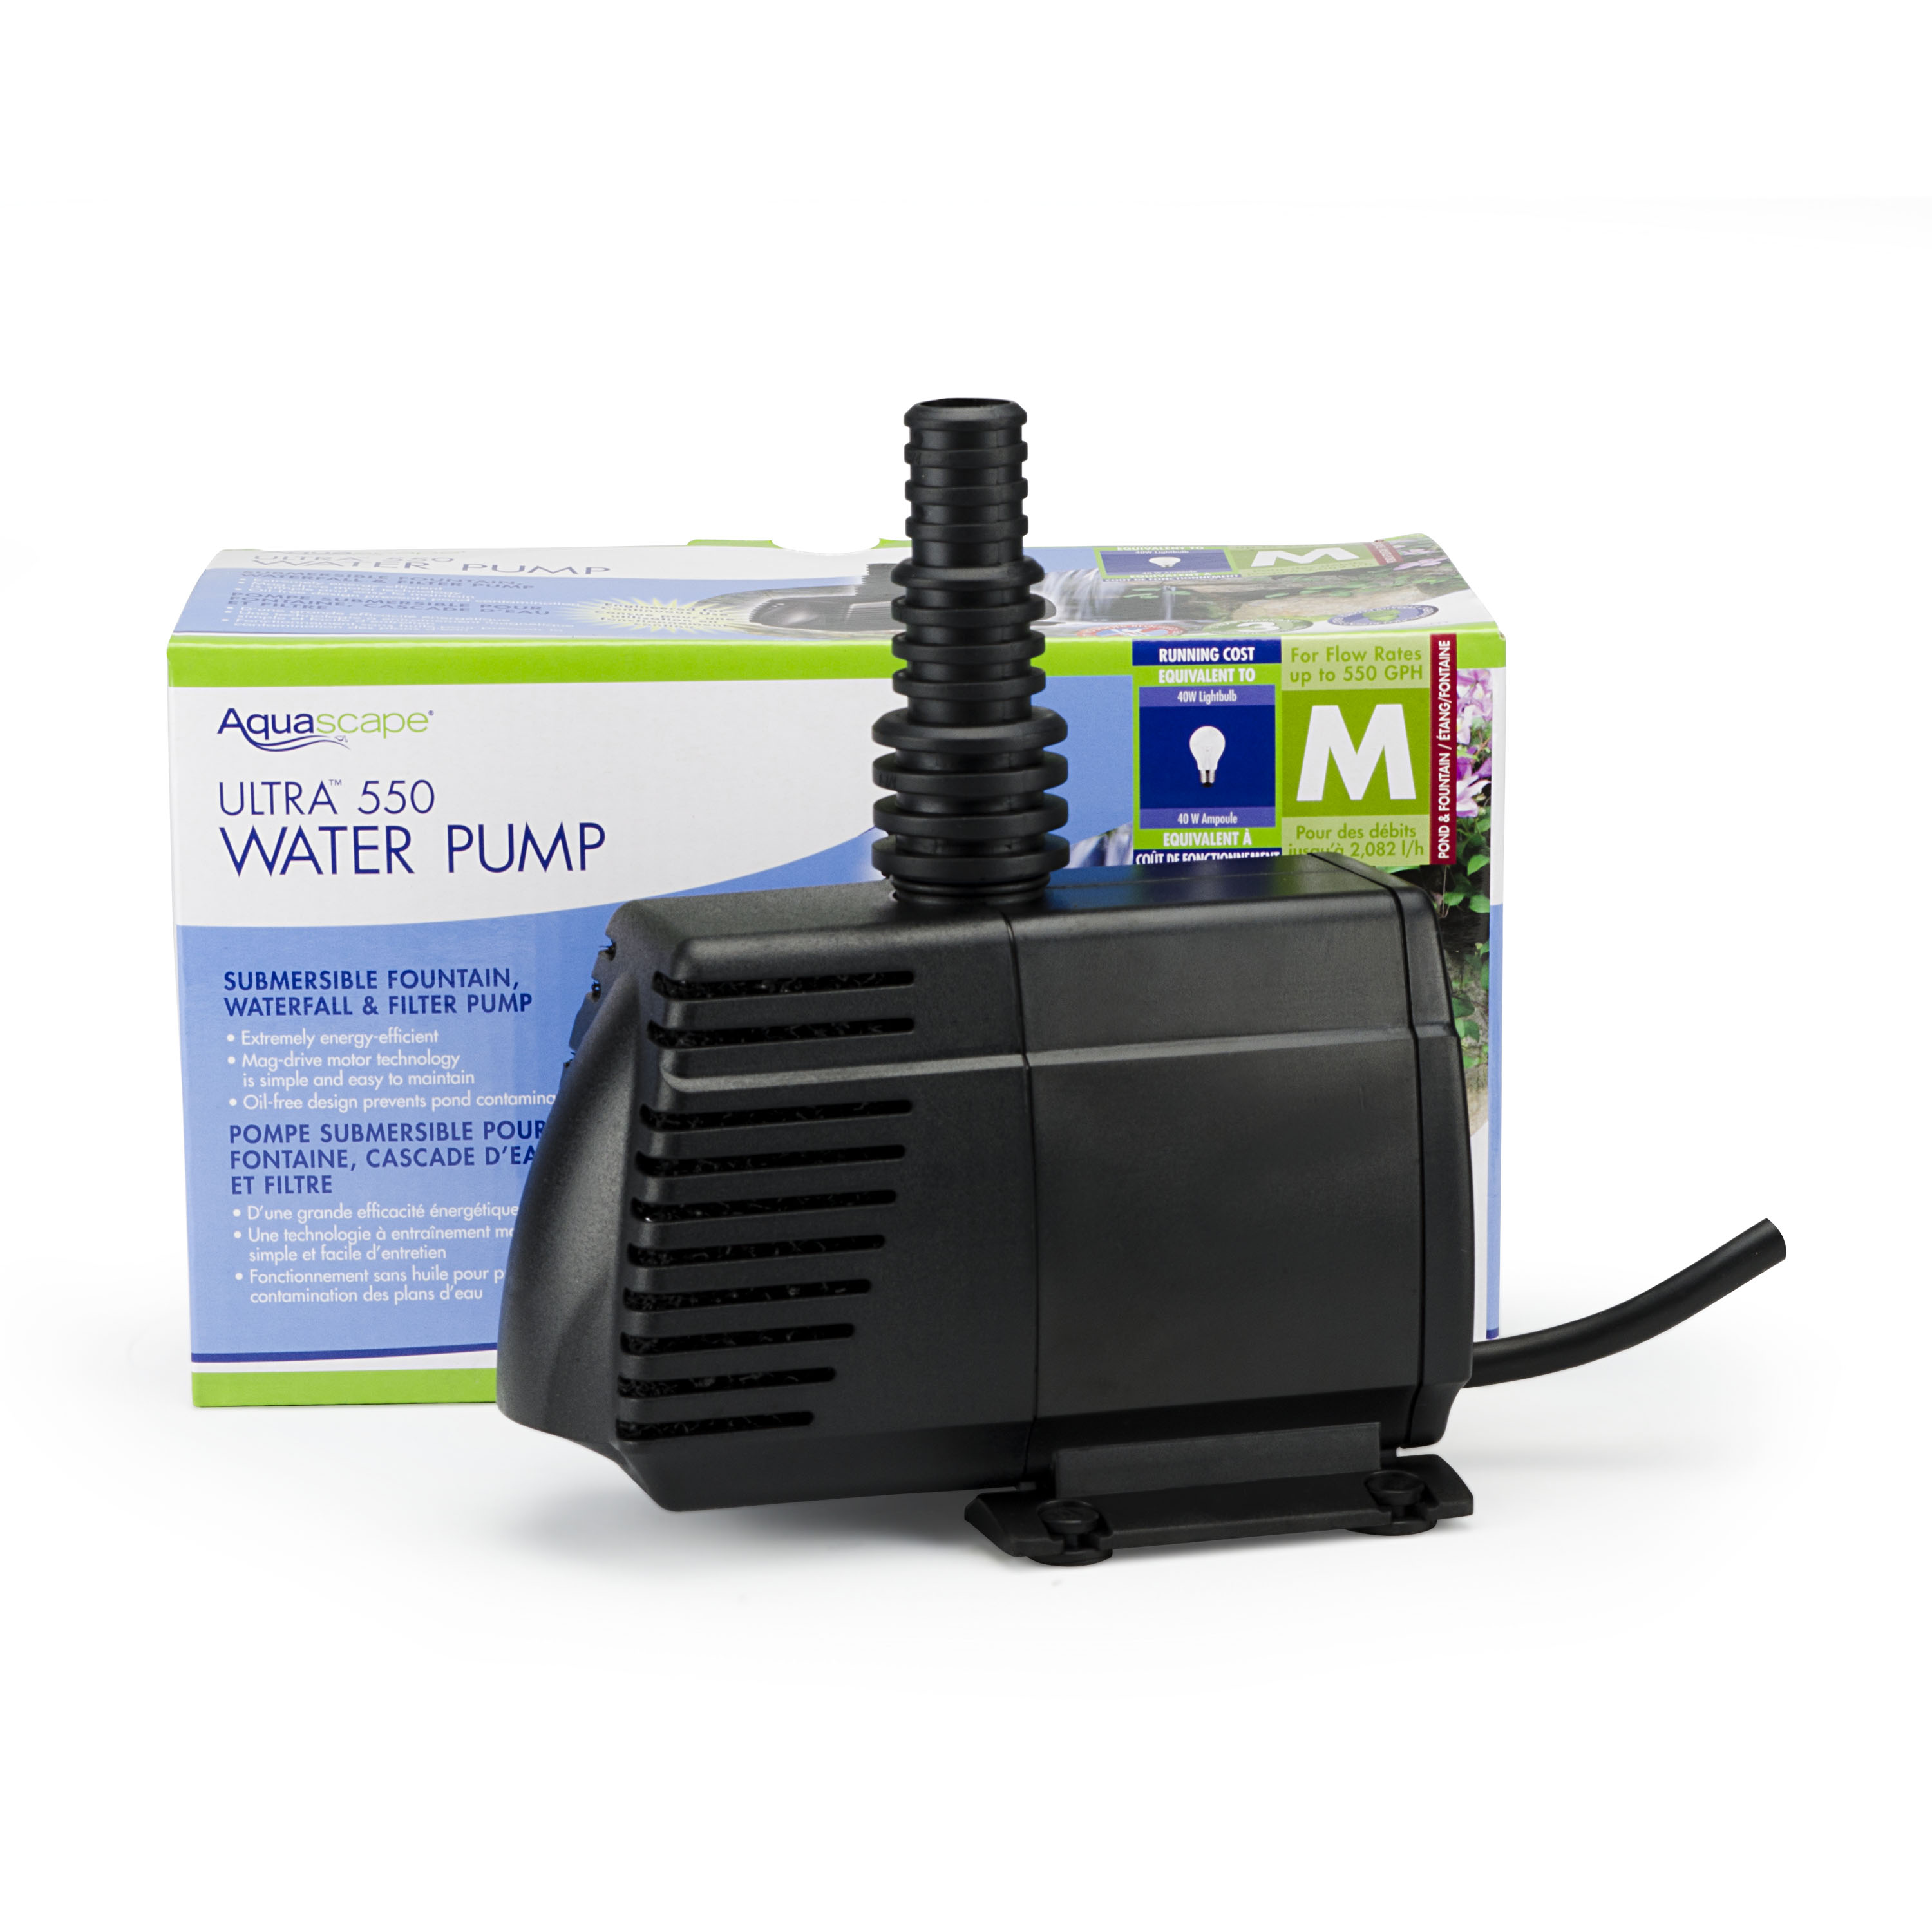 Ultra 550 Water Pump